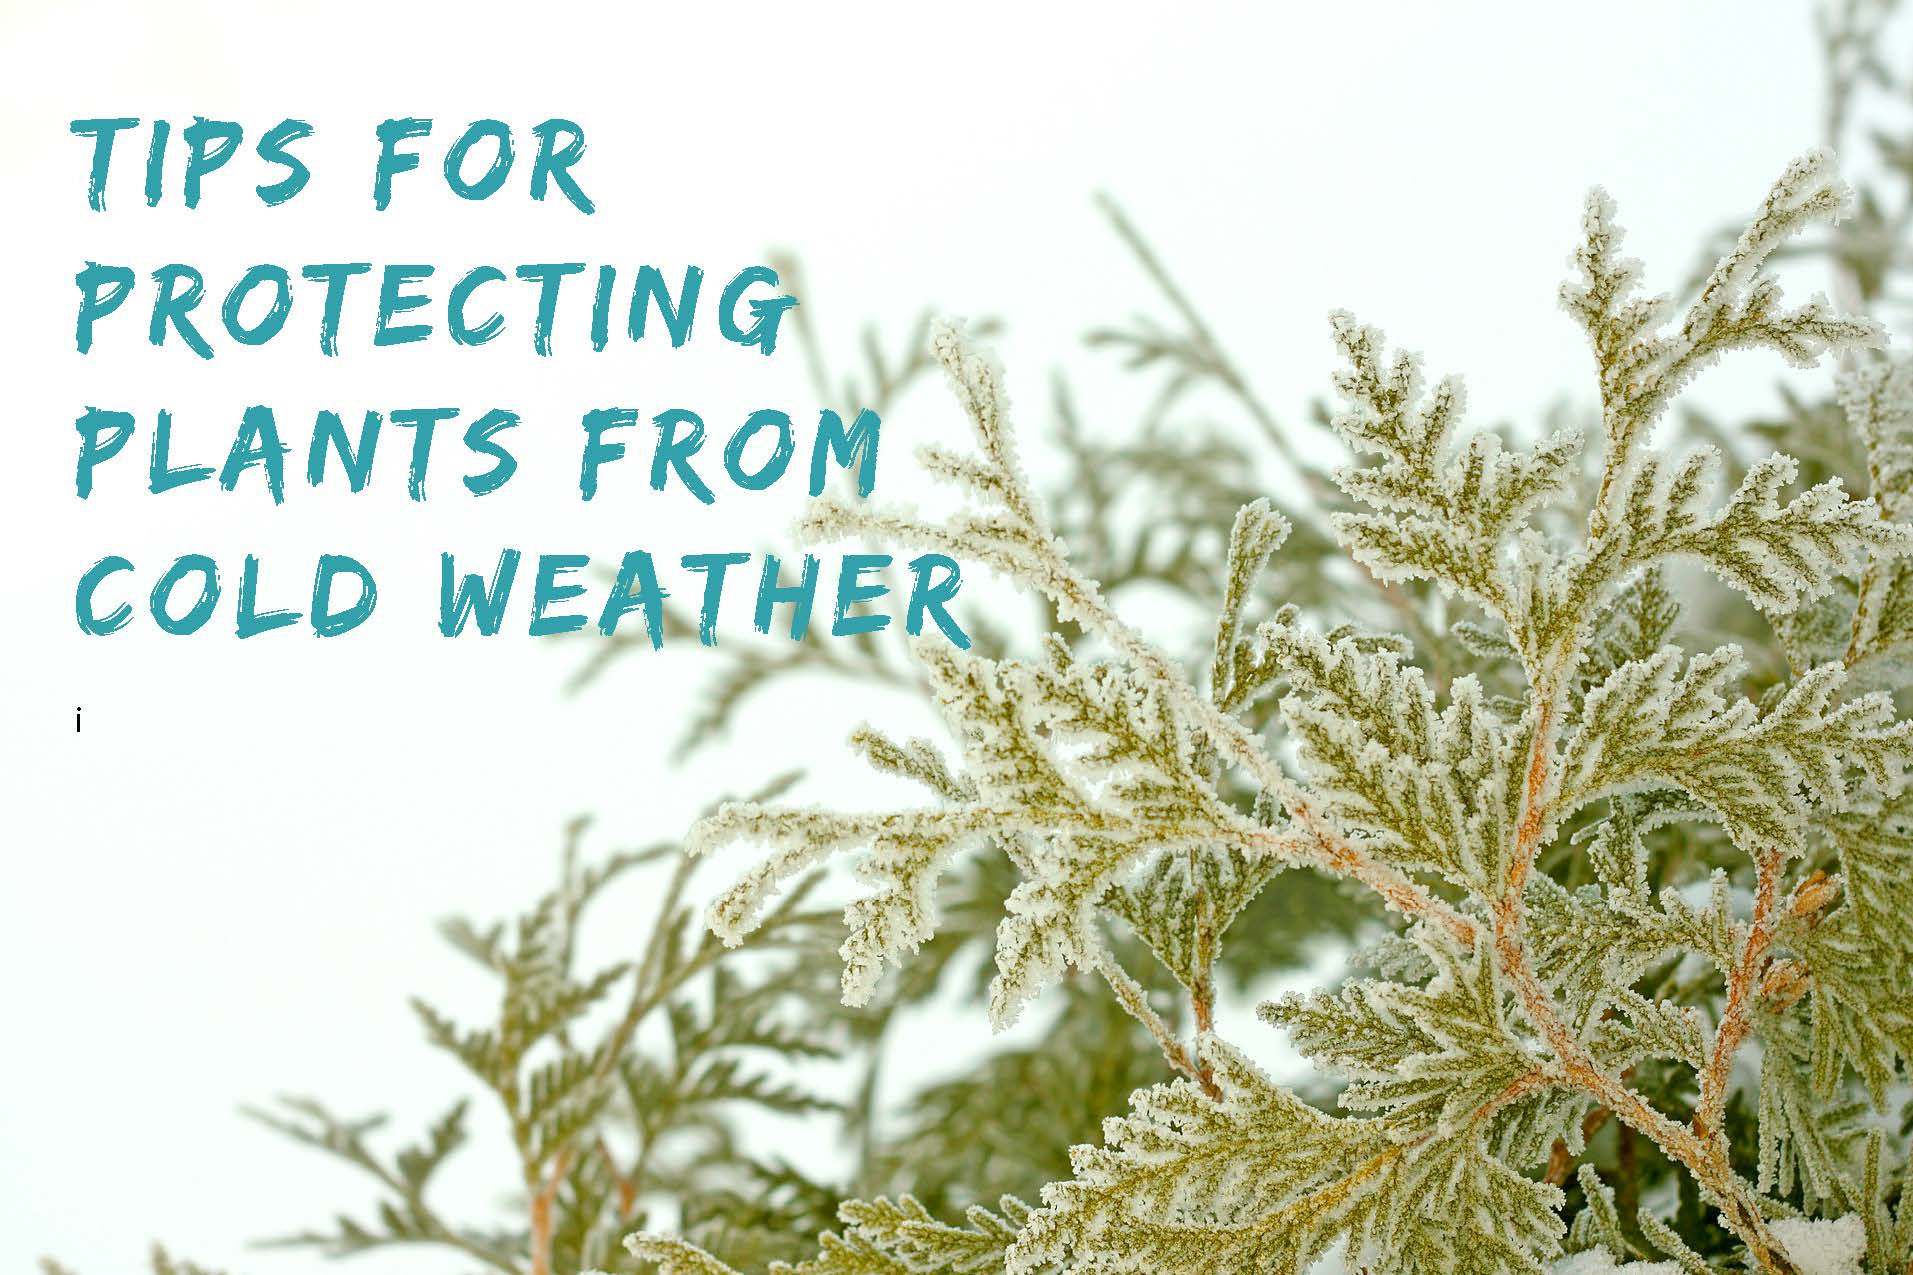 TIPS FOR PROTECTING PLANTS IN THE COLD WEATHER.jpg